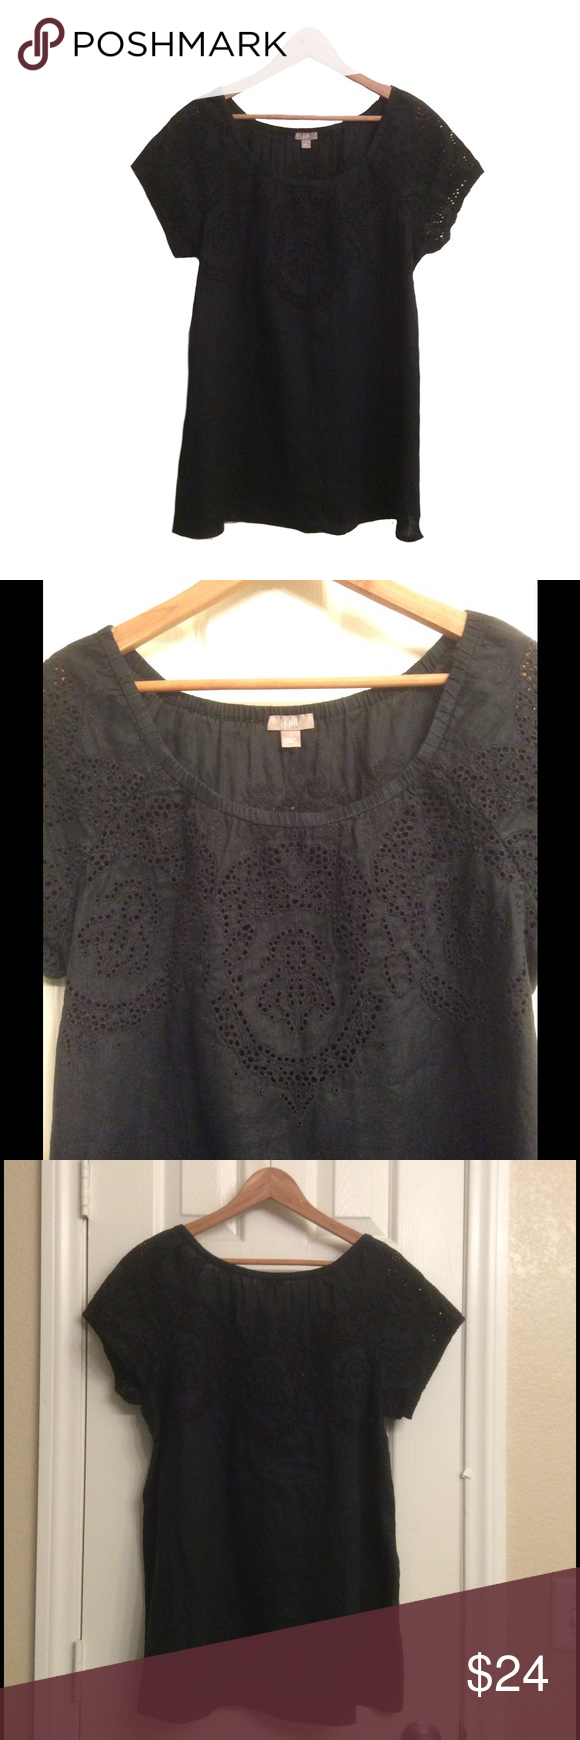 J. Jill linen eyelet blouse & FREE GIFT In great condition, LARGE, 29 inches long, 44 inches between arms, bundle up for savings 💕 Receive a FREE GIFT new boutique gold choker with this purchase 😍 J. Jill Tops Blouses